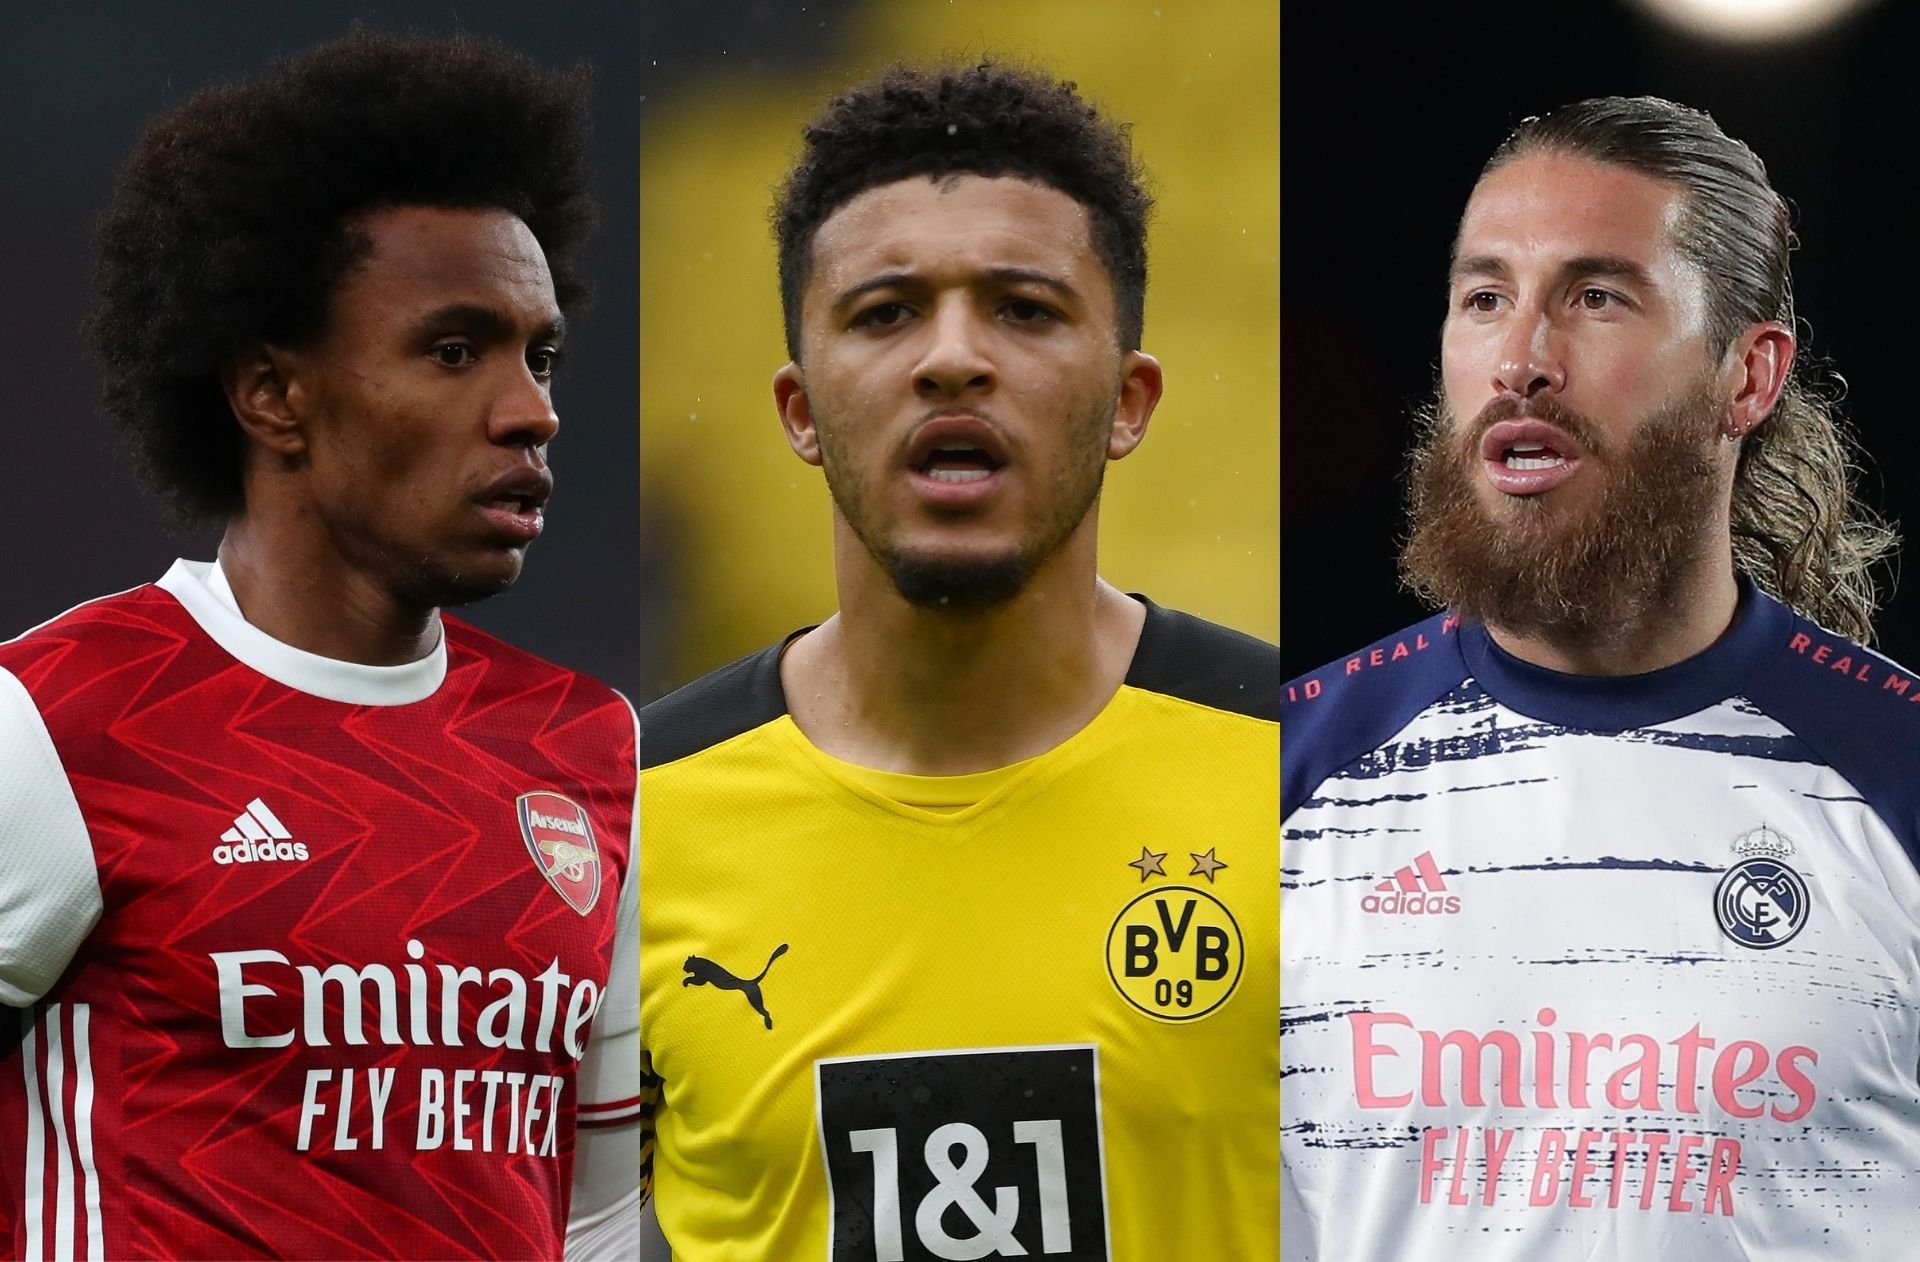 Friday's transfer rumors - Dortmund eye two signings after Sancho sale